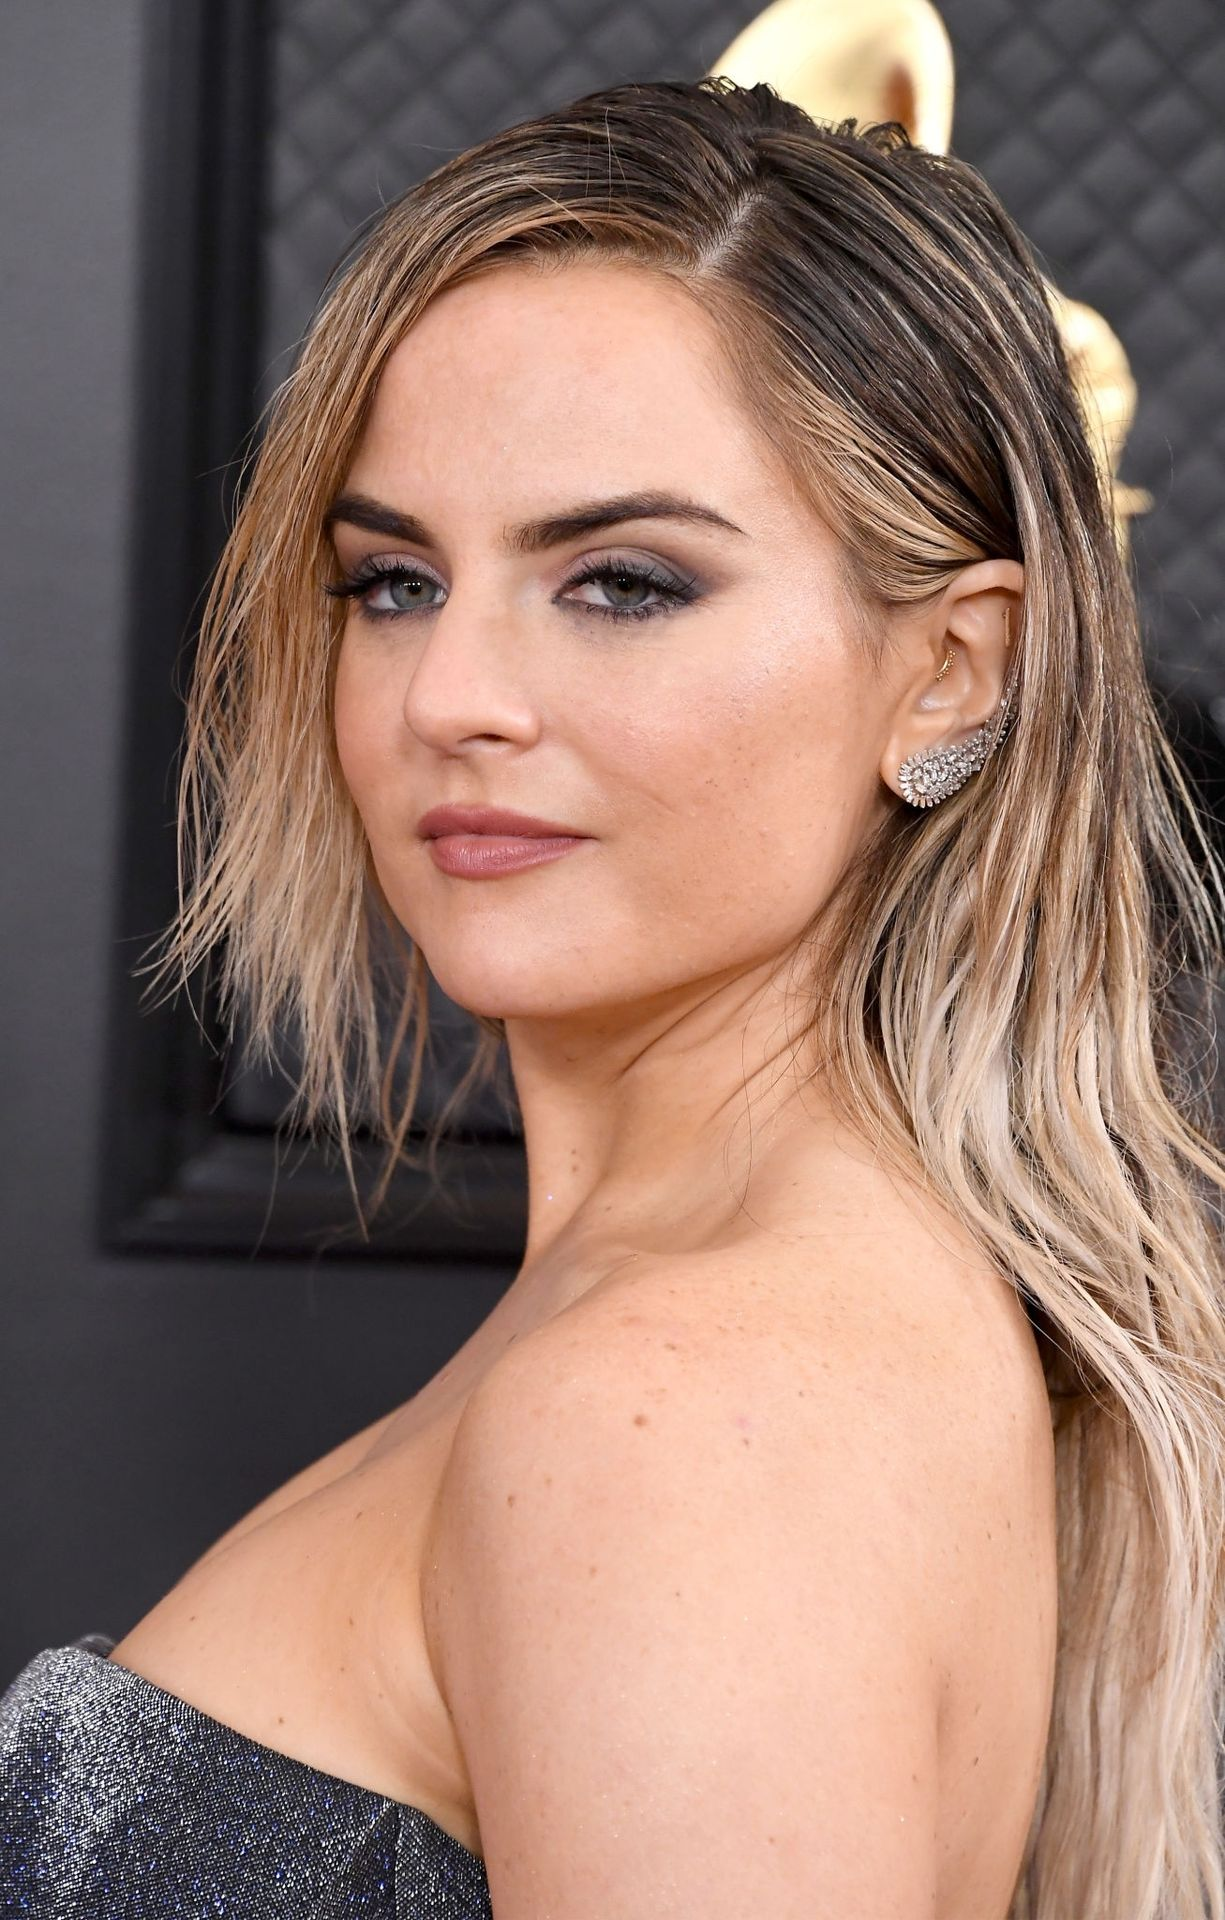 Jojo Shows Her Legs And Cleavage At The 62nd Annual Grammy Awards 0022